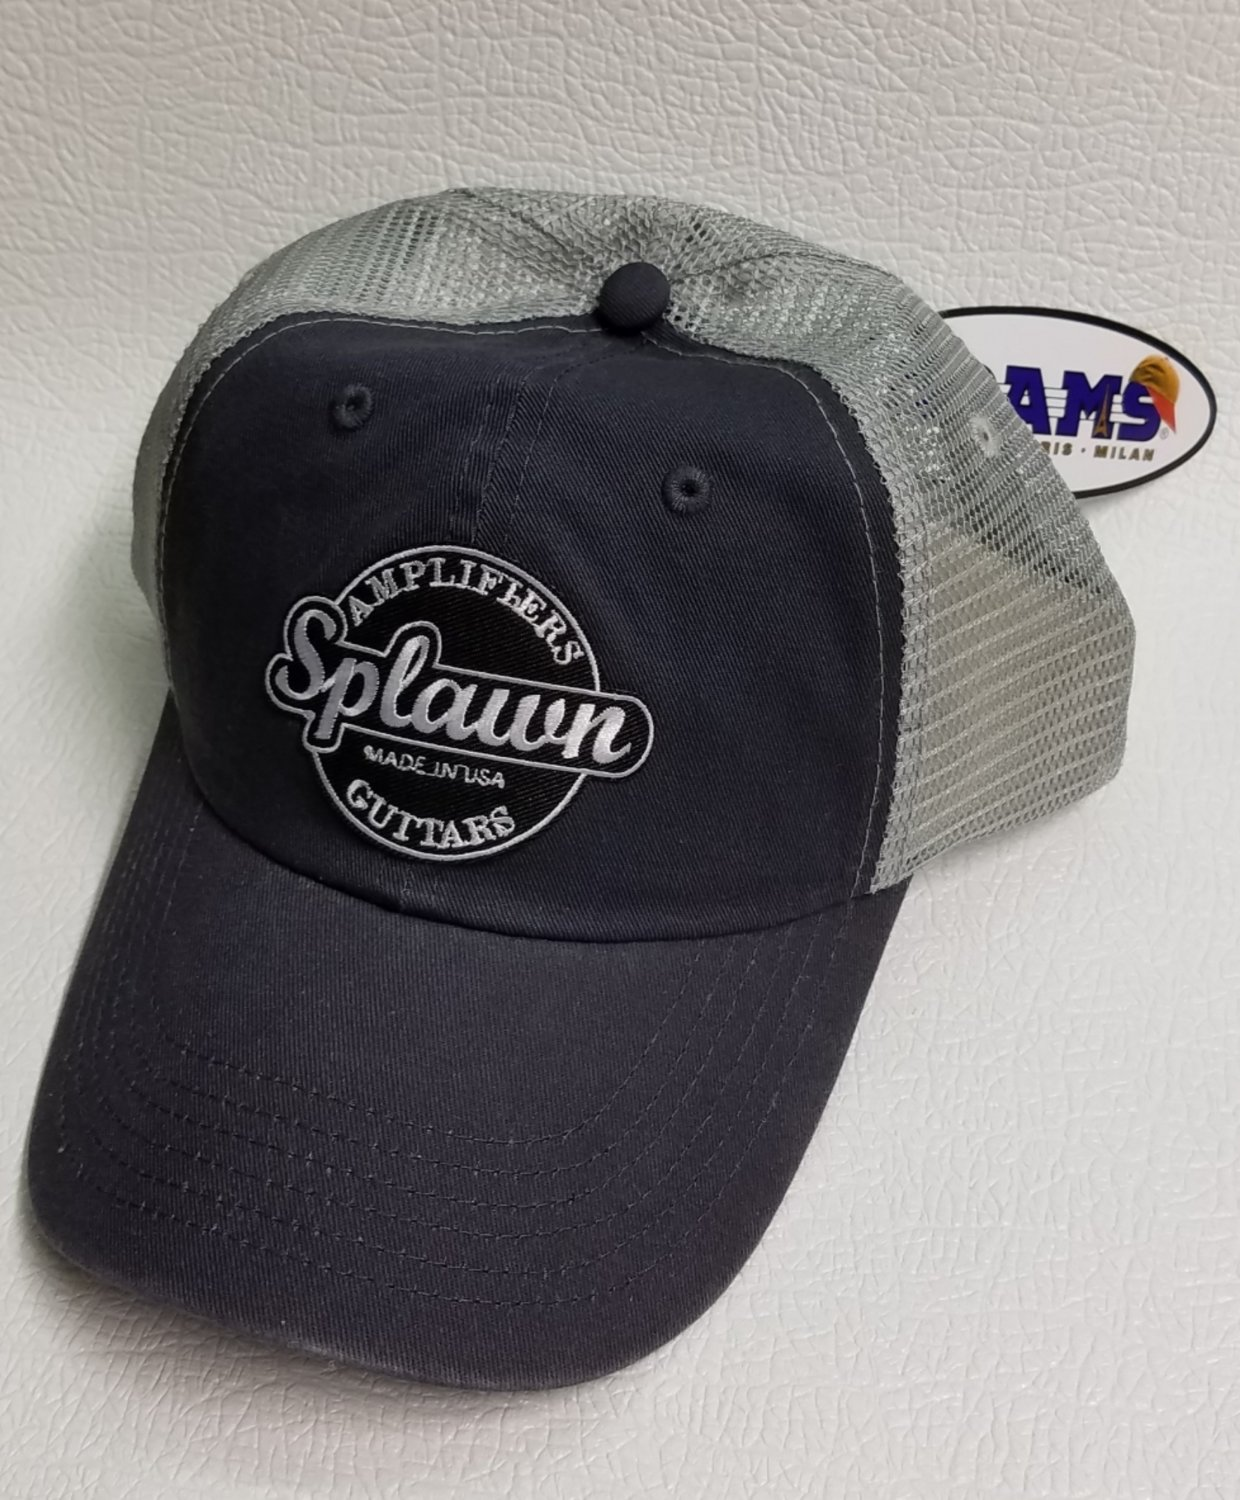 Splawn Amplification Guitars Trucker Cap Adams VB101 Vibe Charcoalwith Light Grey Mesh Center Logo